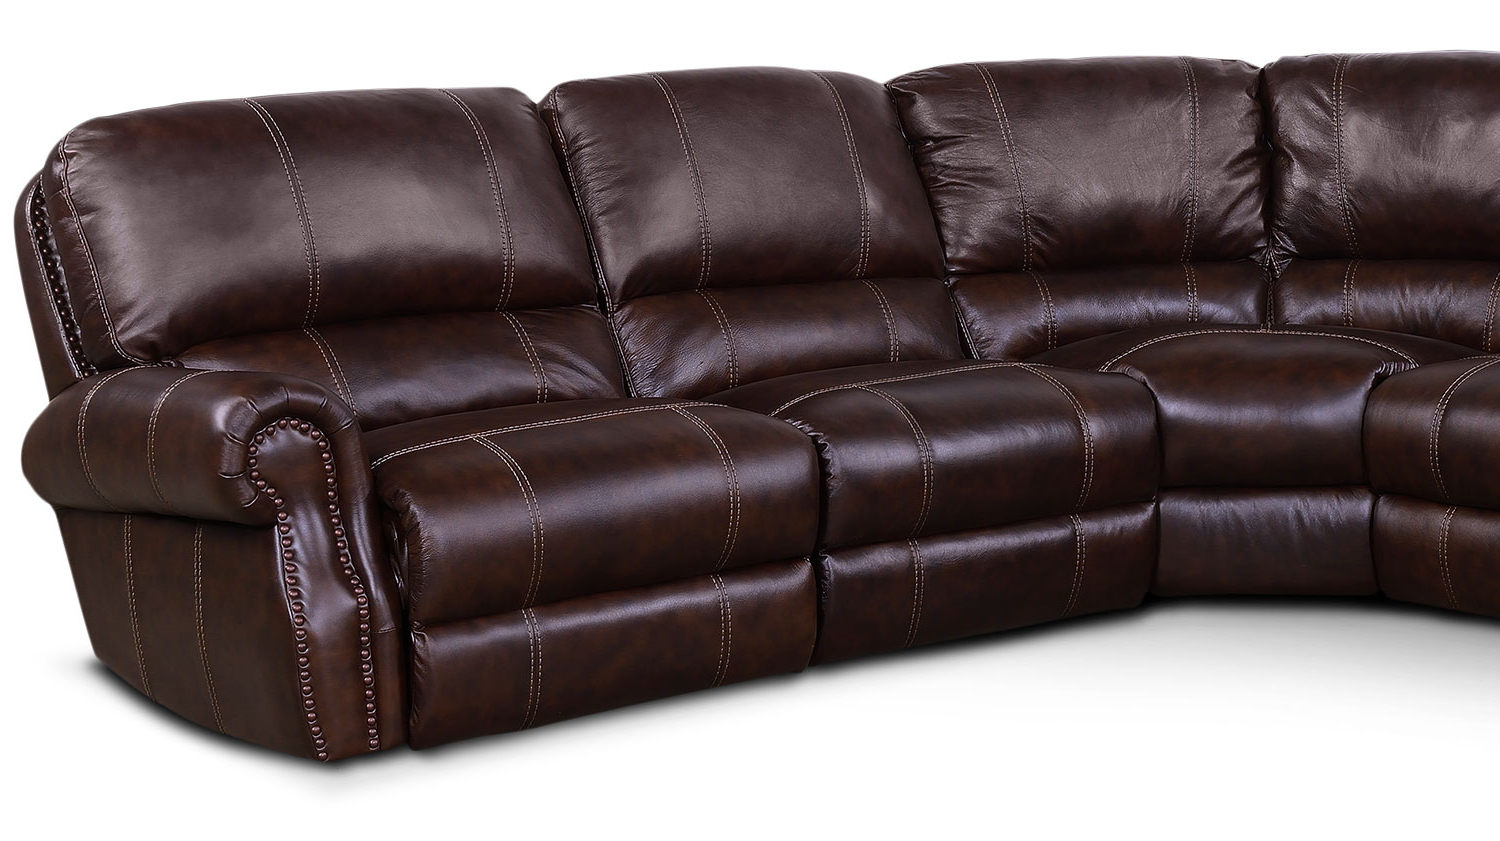 Norfolk Chocolate 3 Piece Sectionals With Raf Chaise For Well Known Dartmouth 6 Piece Power Reclining Sectional With 2 Reclining Seats (View 12 of 20)